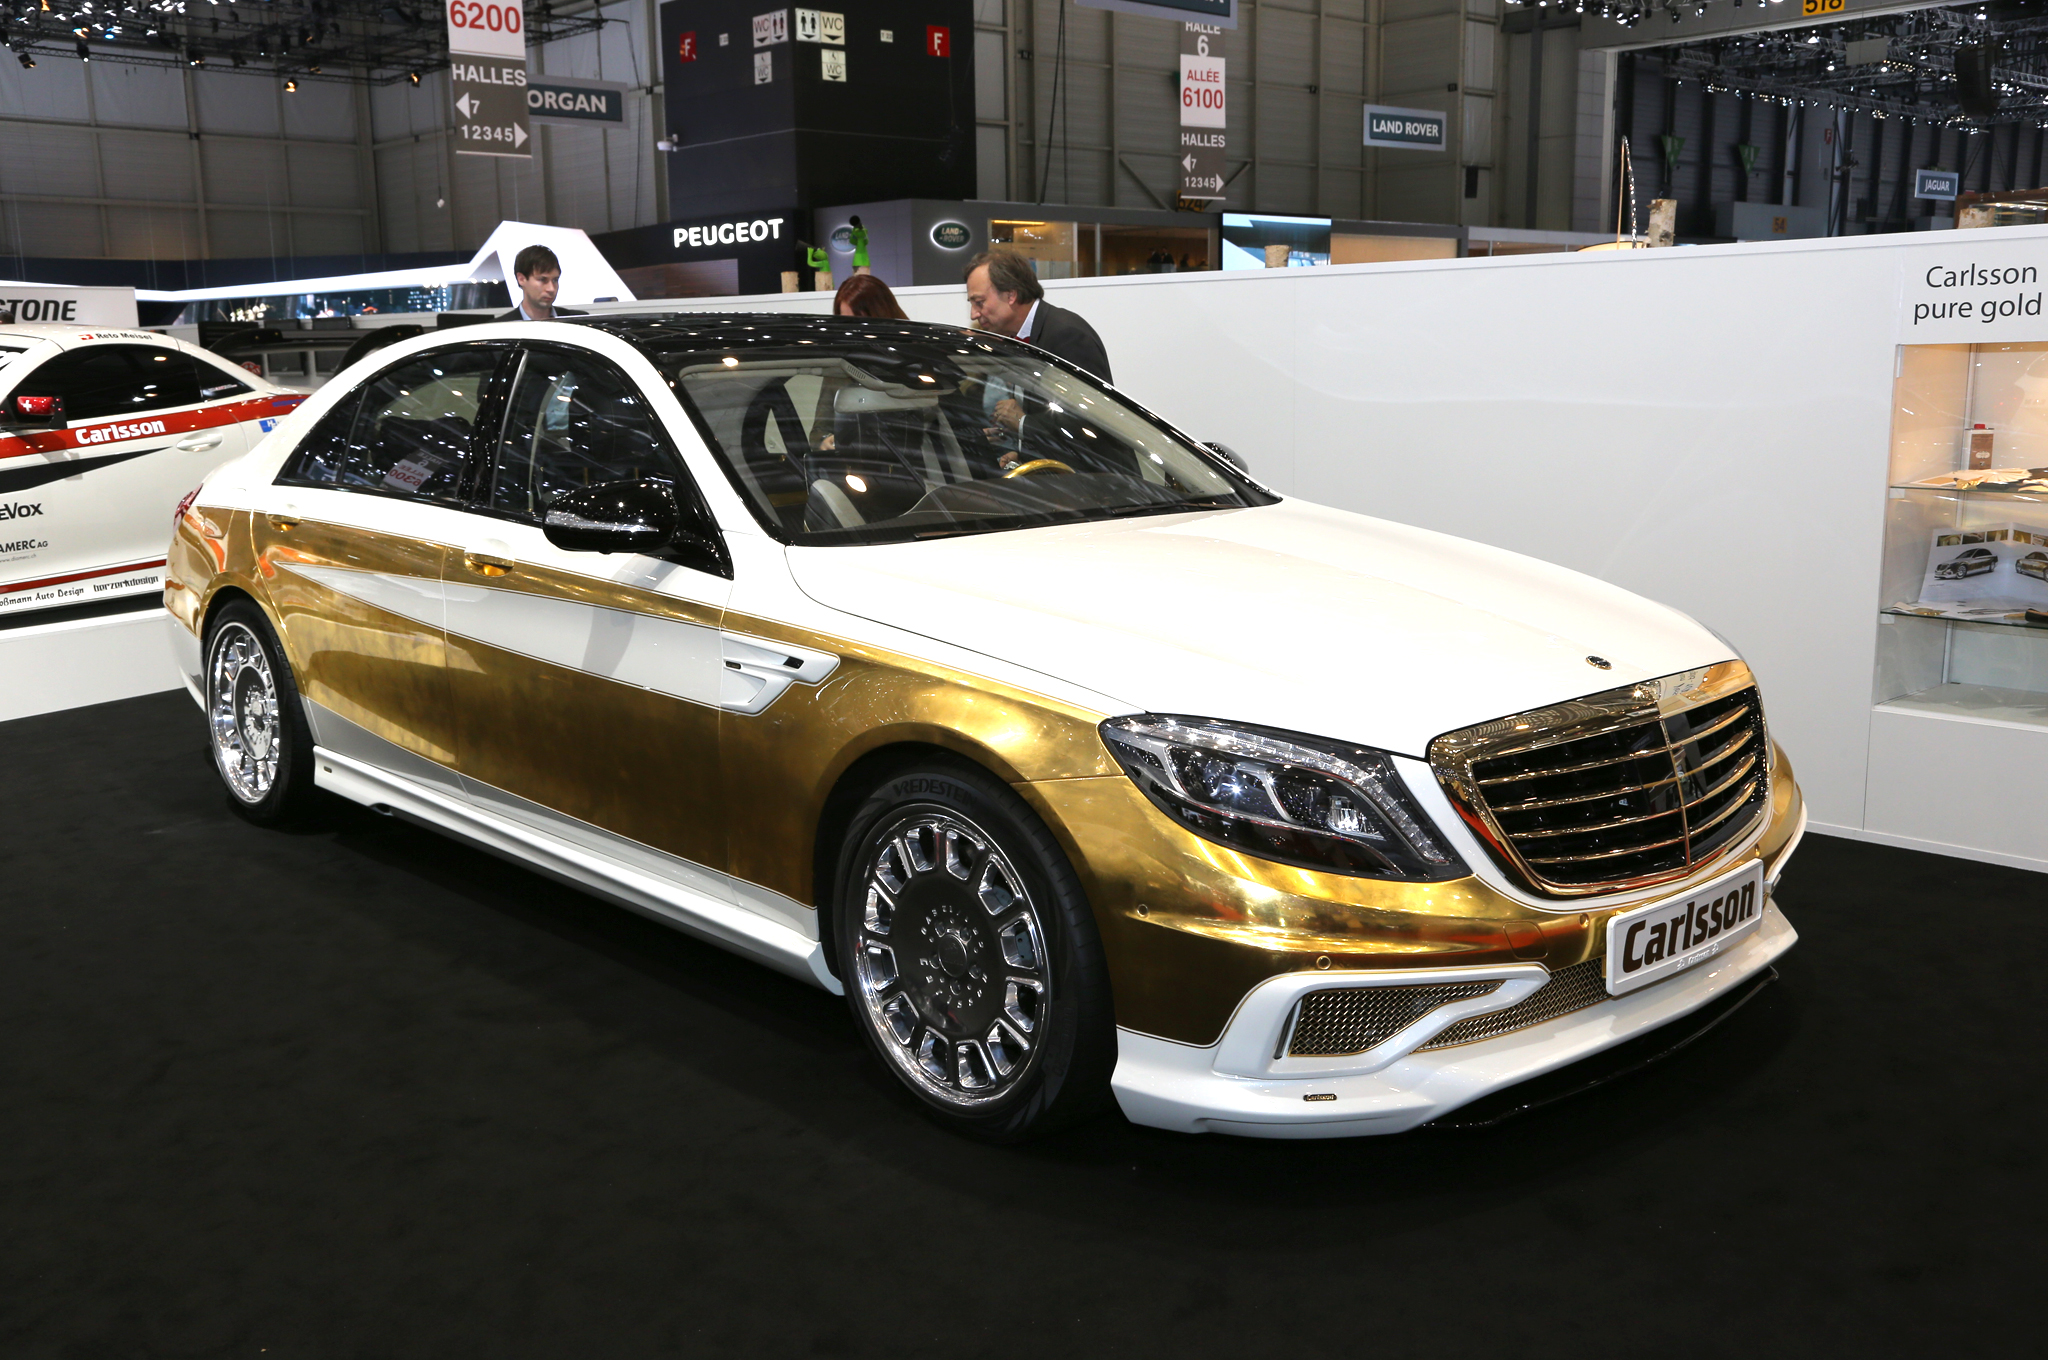 Oh Là What? Carlsson CS50 Versailles Attempts to Rule Geneva